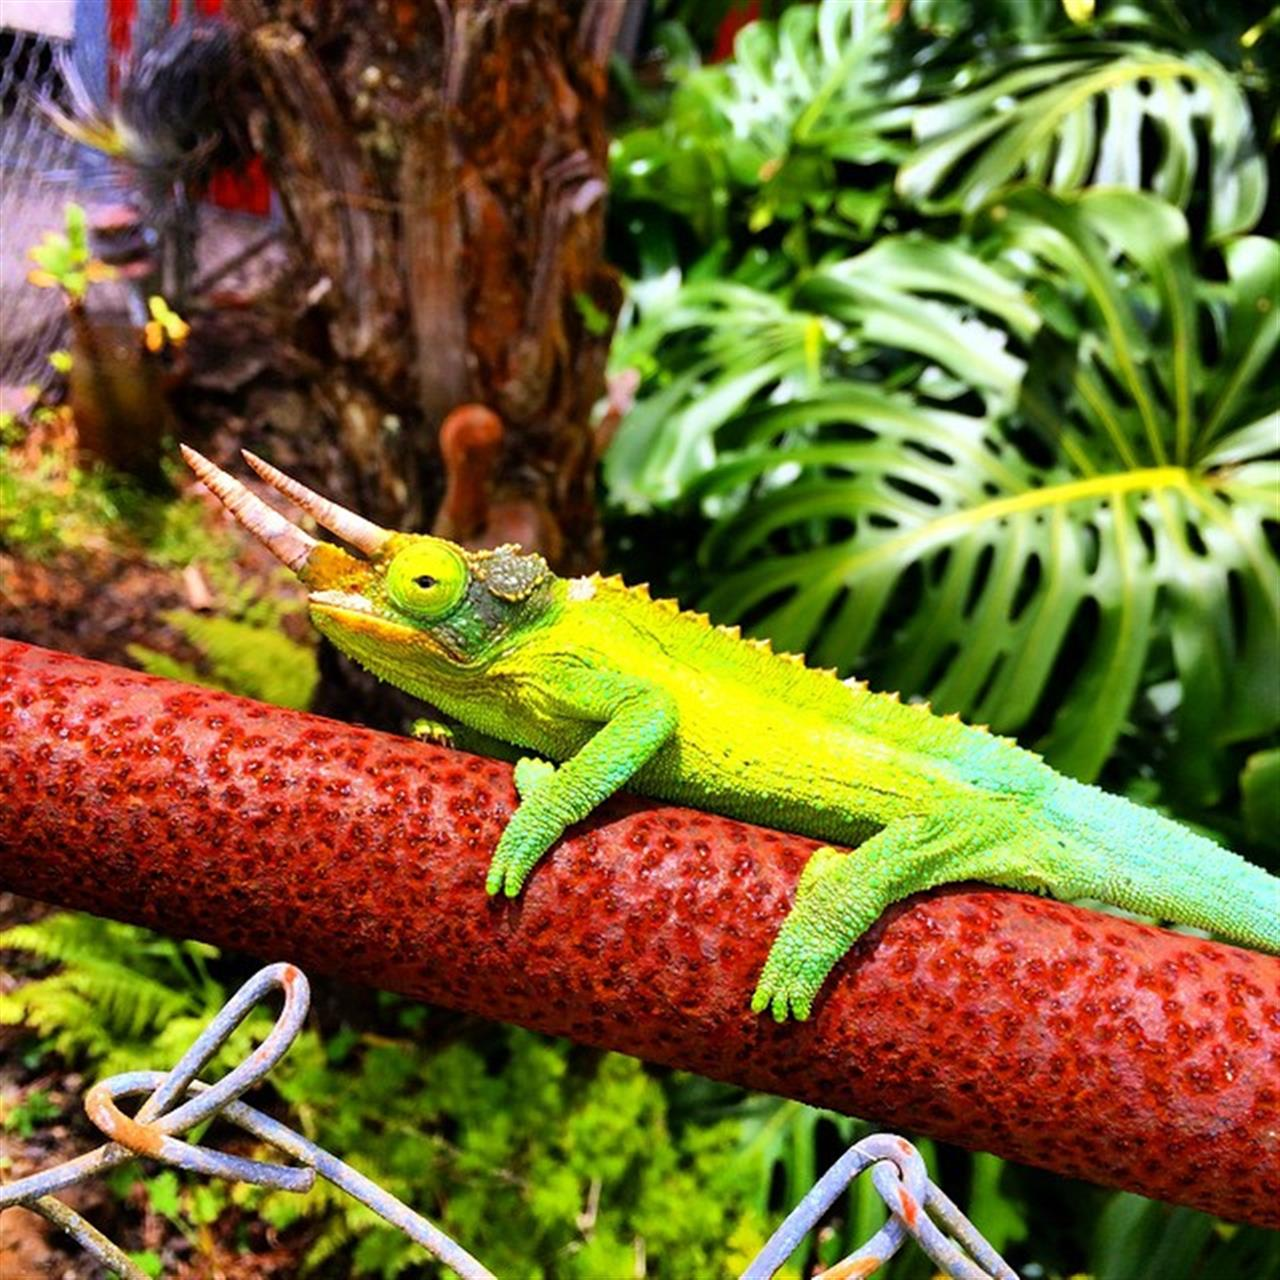 Meet Jack! He's so friendly! #jacksonchameleon #unclebuzzyshulastudio #waimea #beemary #beingbrooke #leadingRElocal